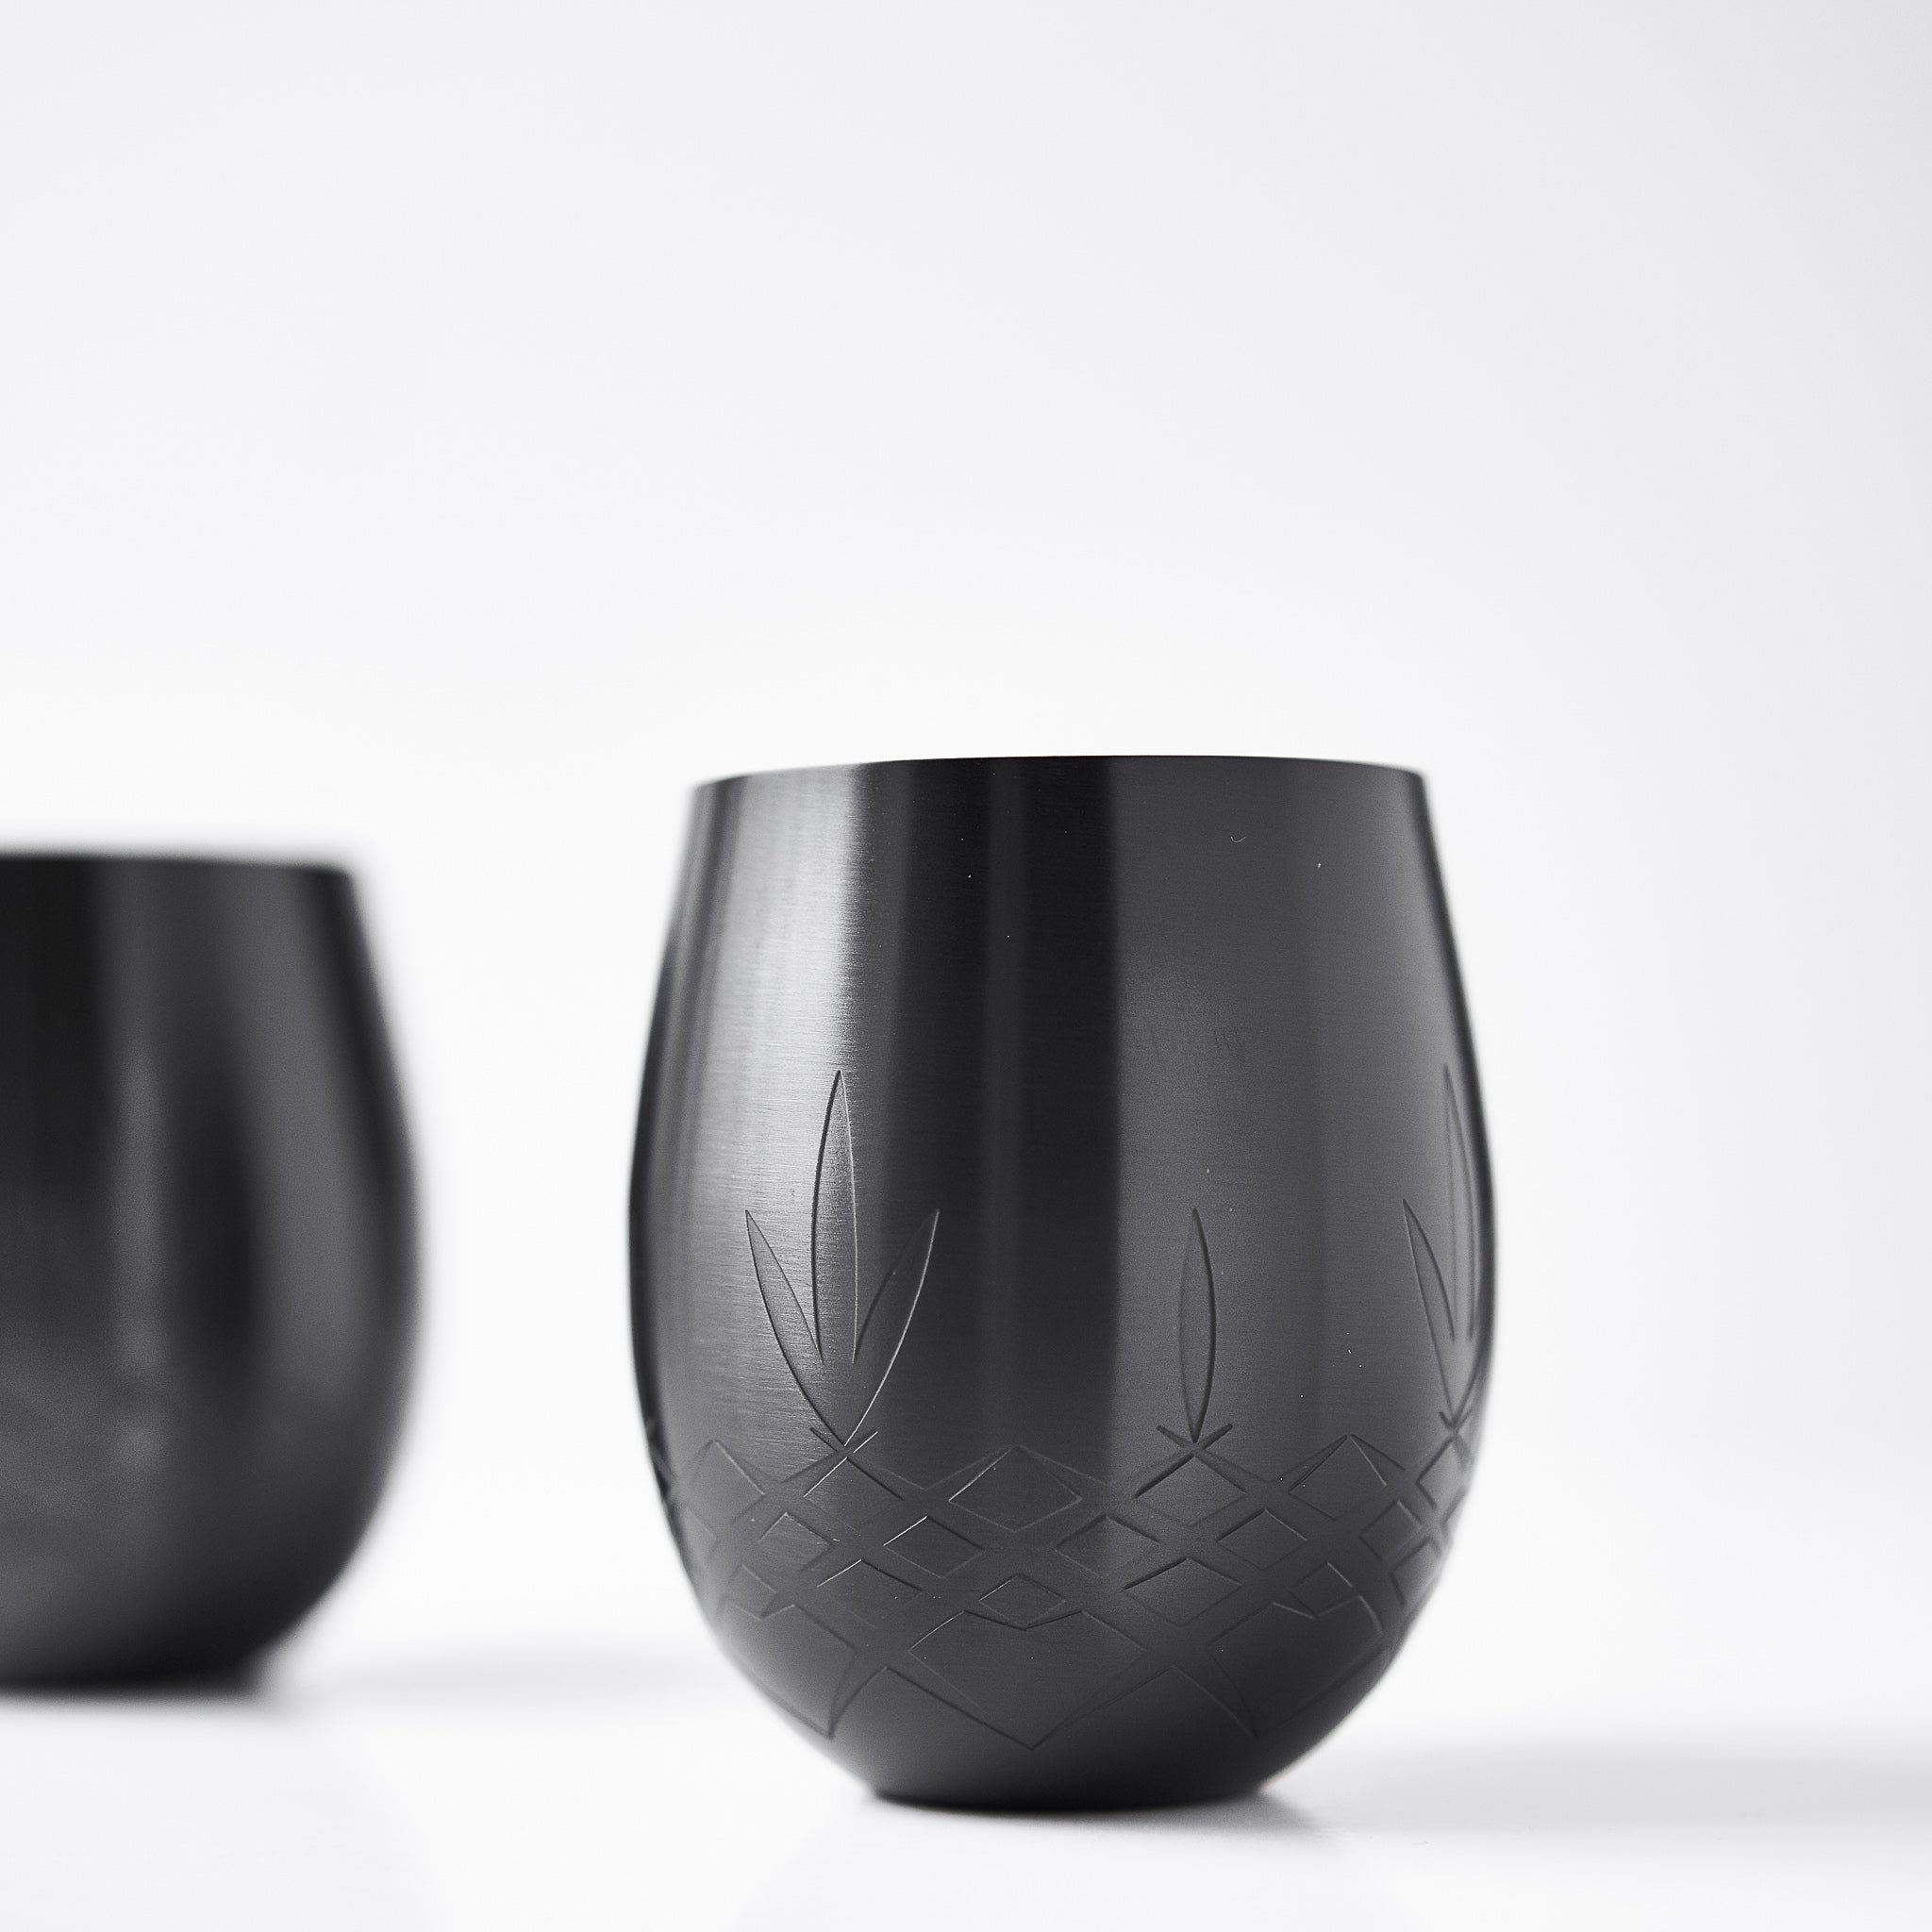 Shine Goblet Dark - 2 Pieces